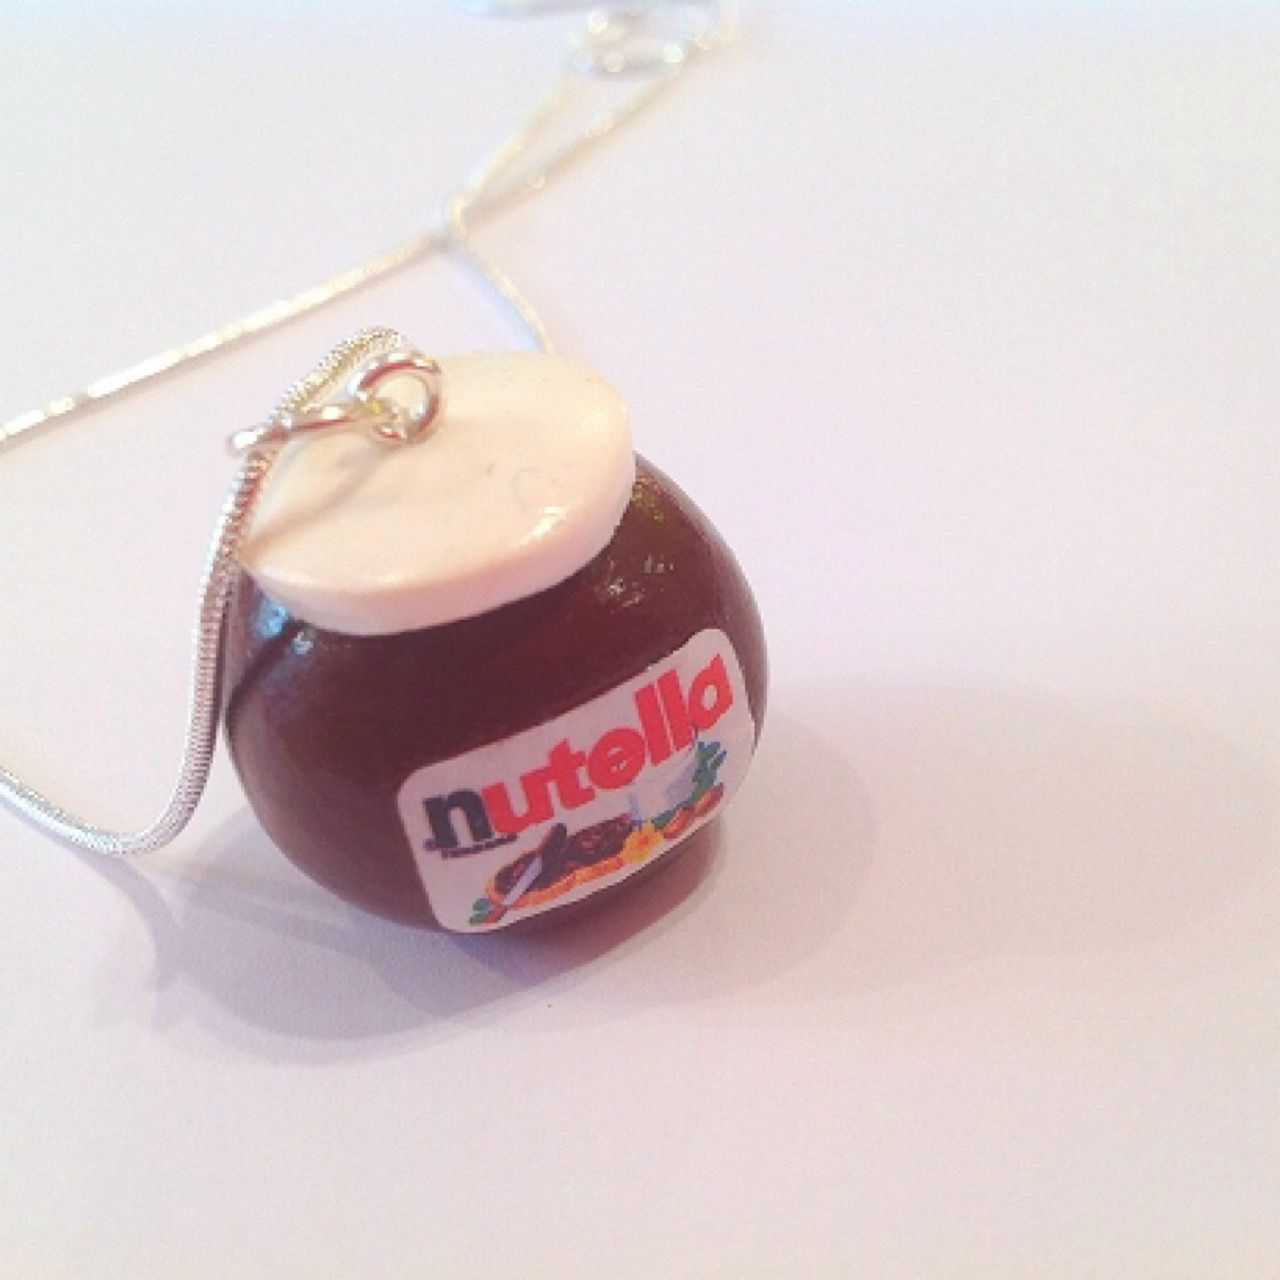 Handmade Nutella Jar Chocolate Spread Pendant Necklace - Perfect Chocolate Lover Gift! FREE Gift Bag